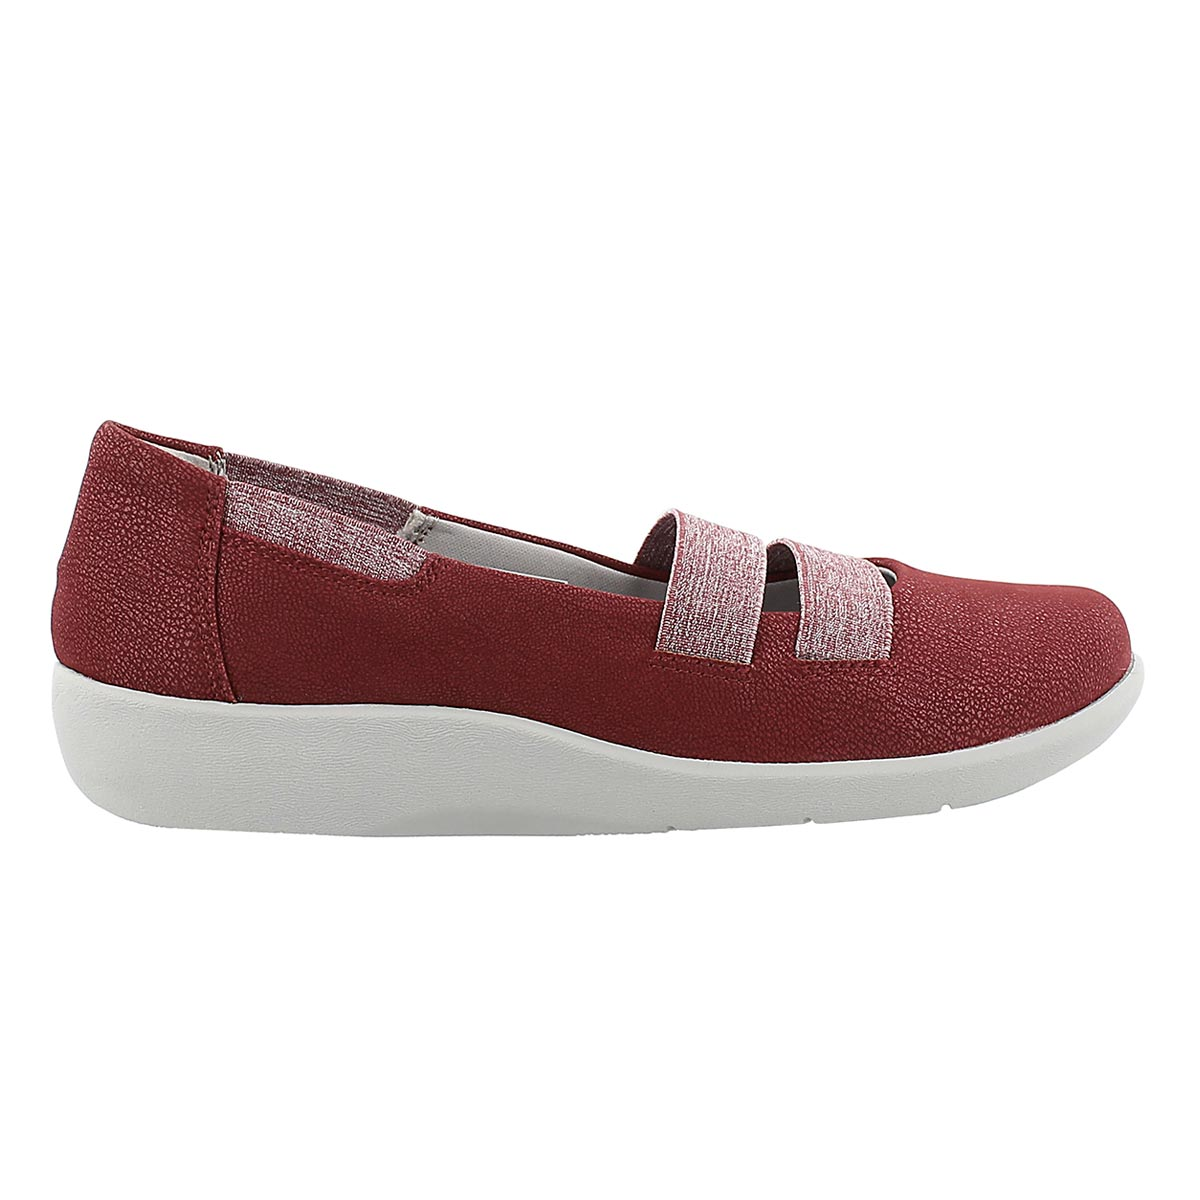 Lds Sillian Rest red slip on casual shoe